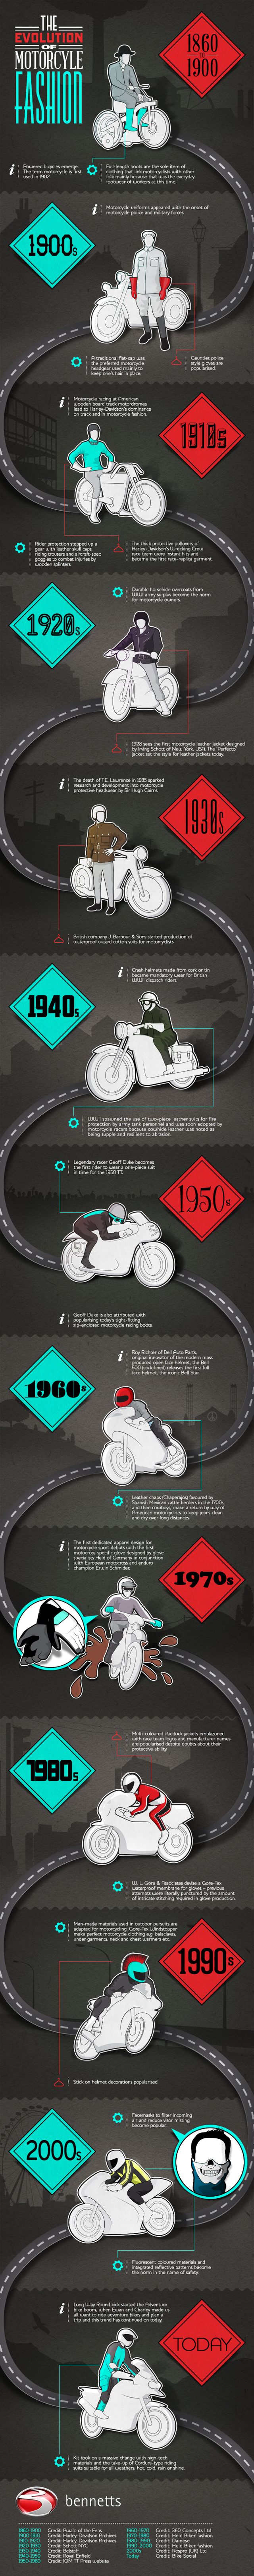 The Evolution of Motorcycle Fashion Infographic